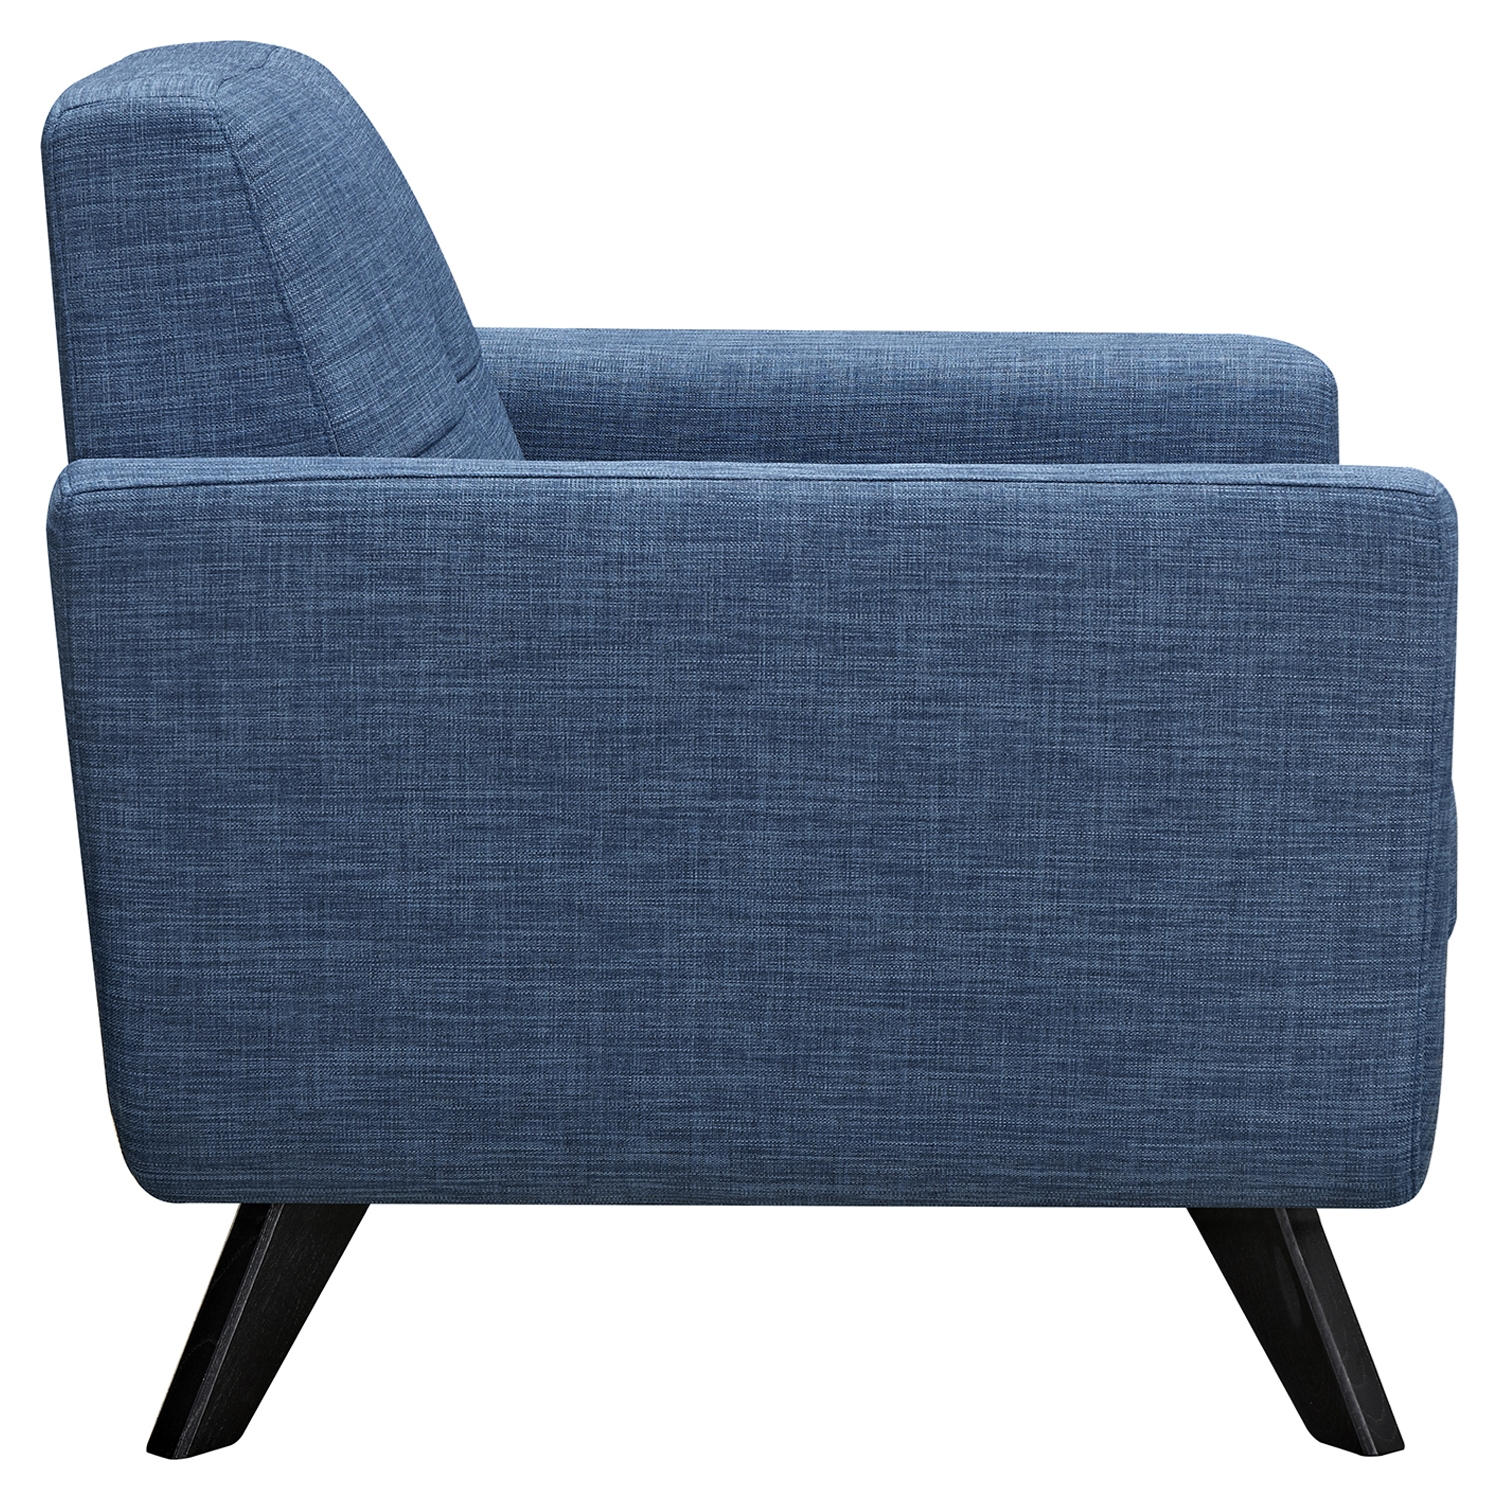 Dania Tufted Upholstery Armchair Stone Blue Dcg Stores